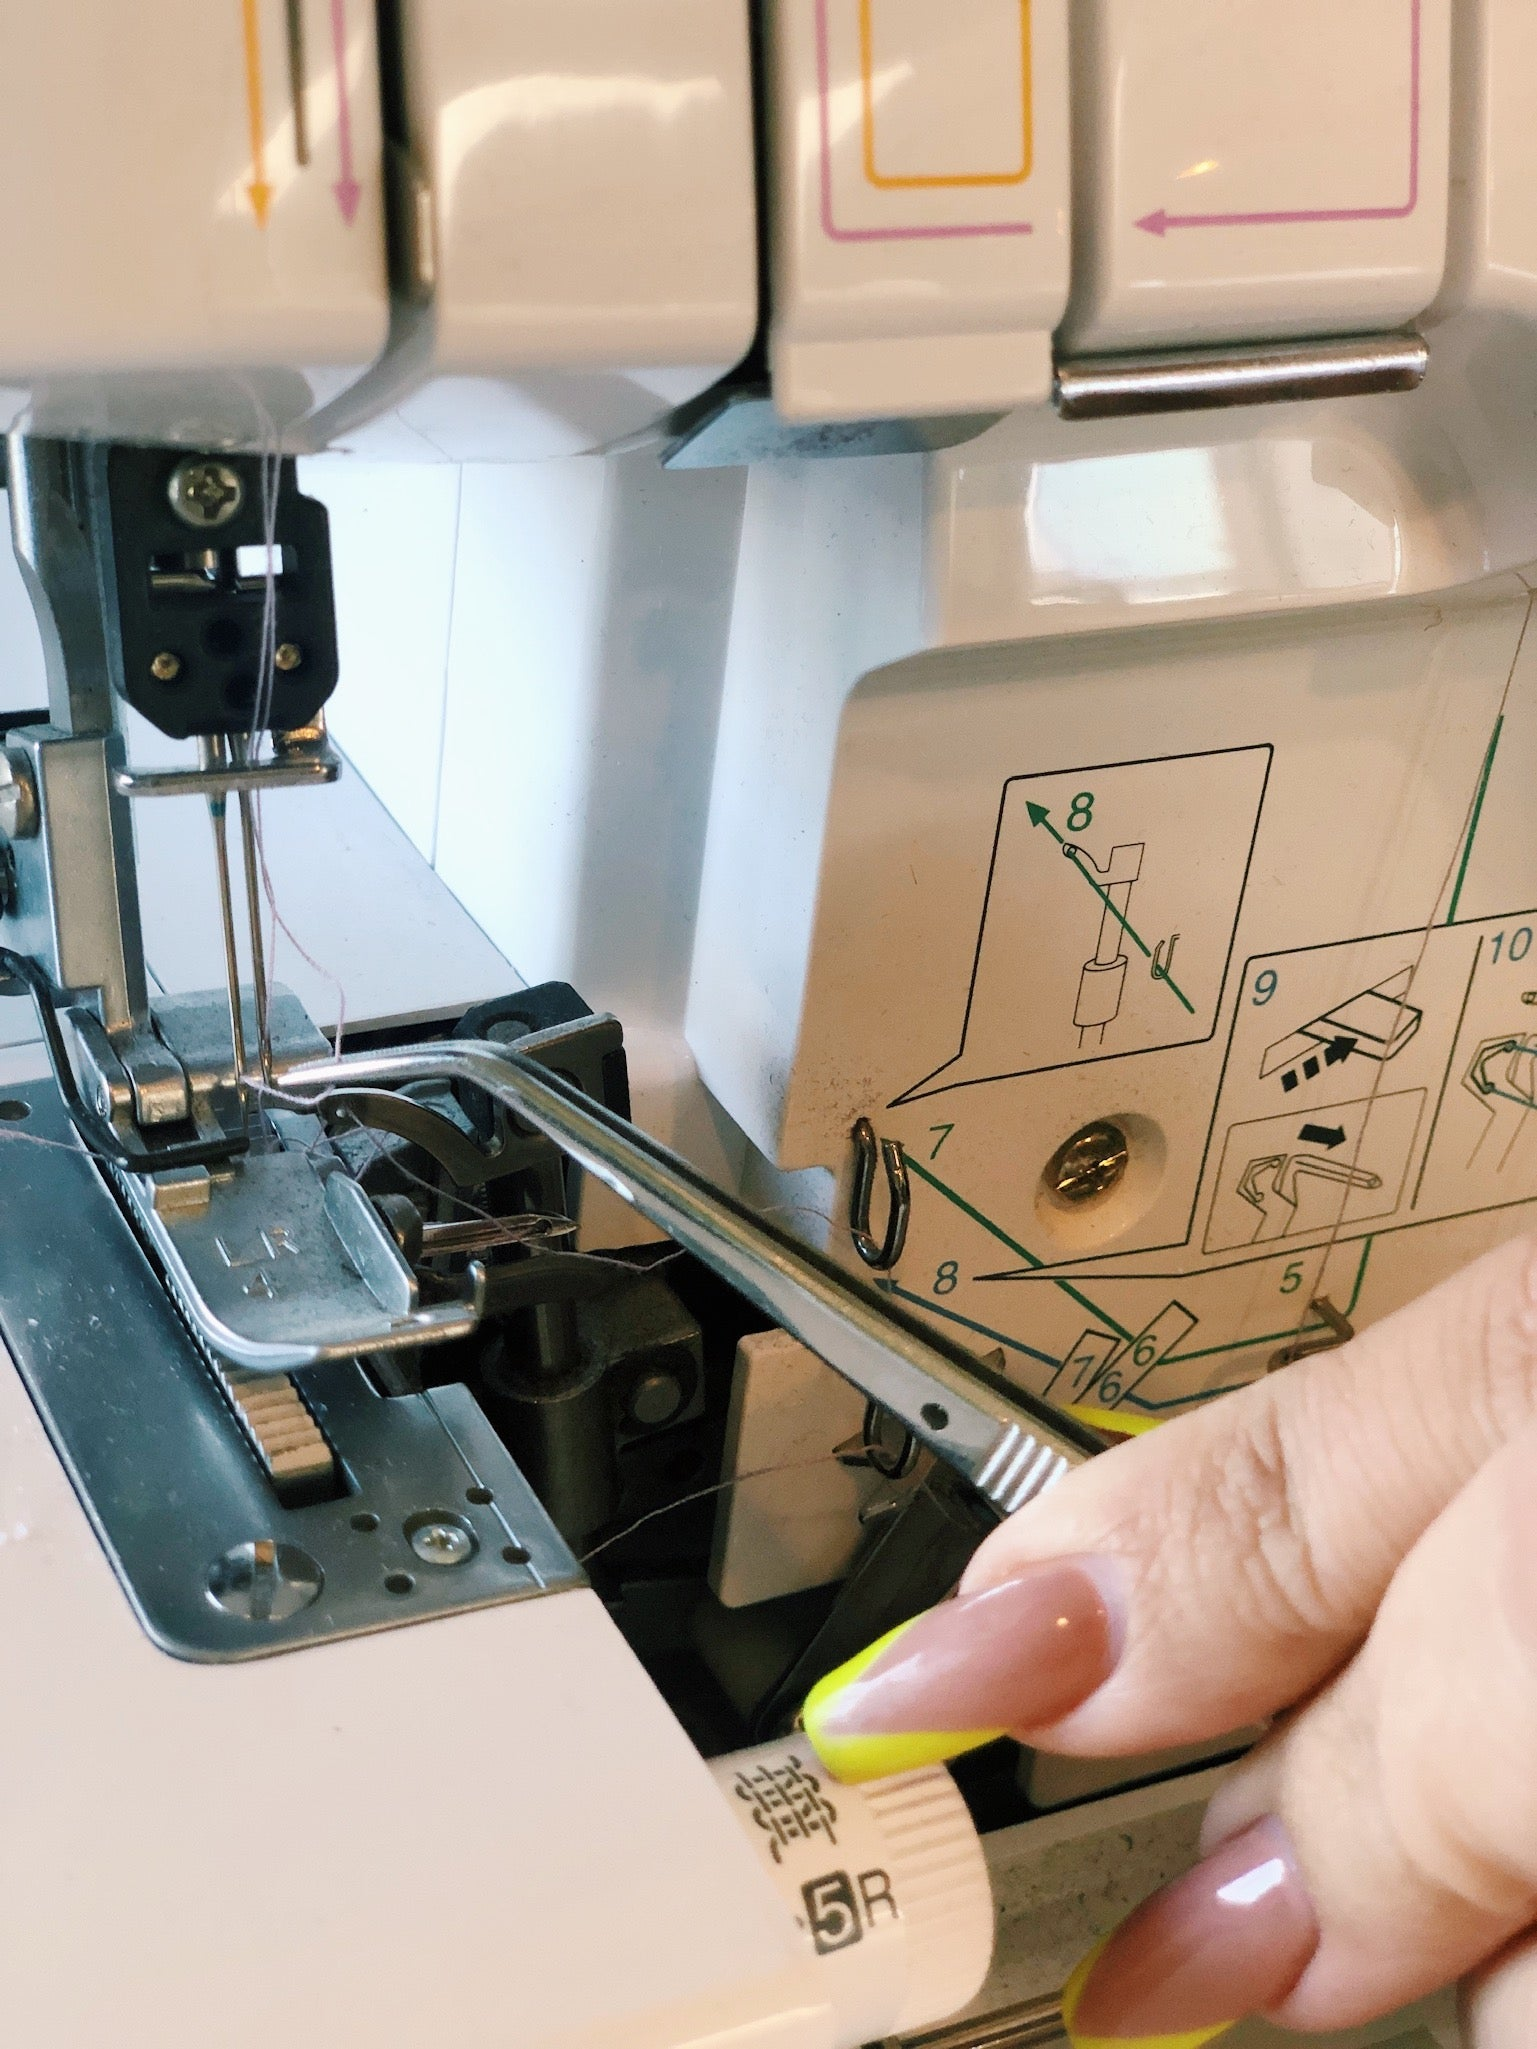 Learn How to Sew Knits Using a Serger - October 20th,  November 17th and January 19th